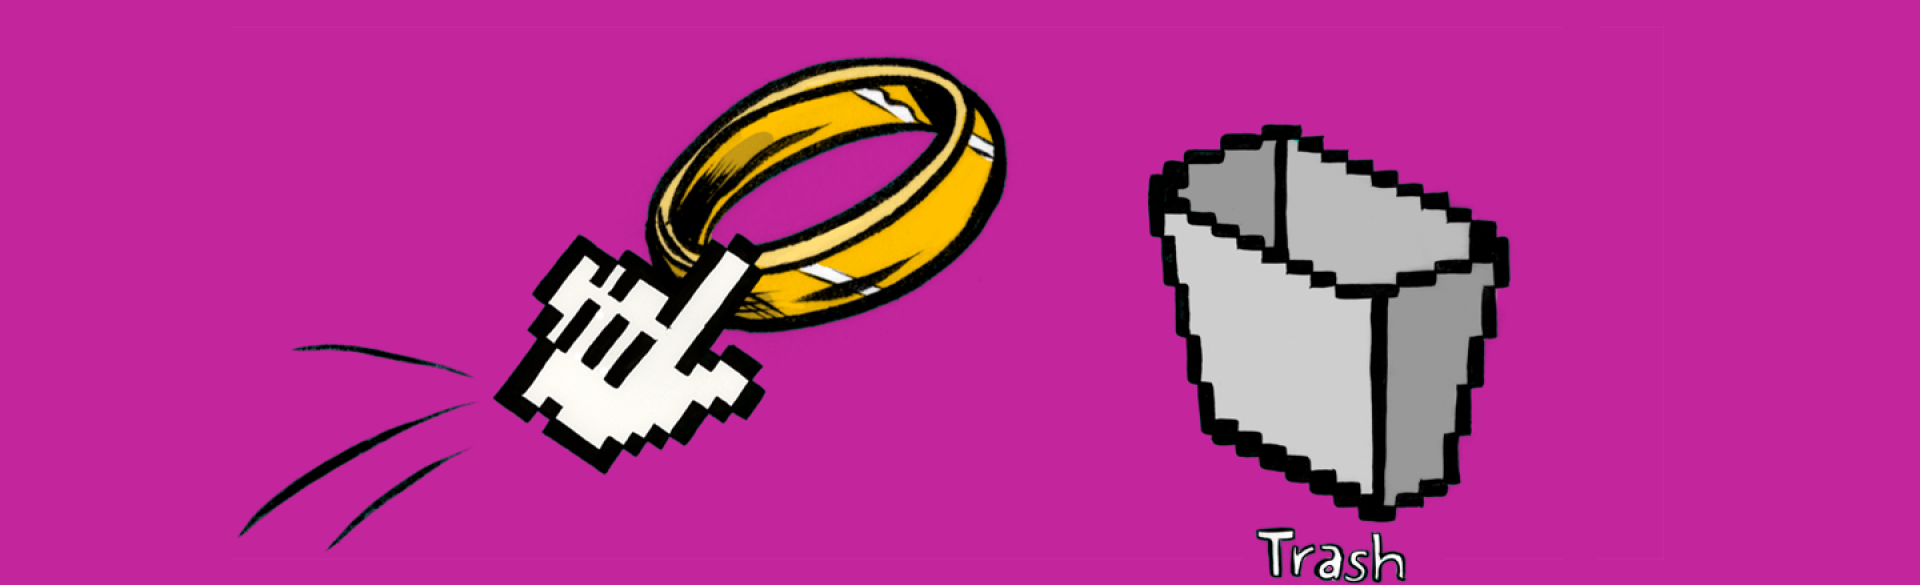 A graphic of a computer pointer moving a wedding ring to the trash icon.